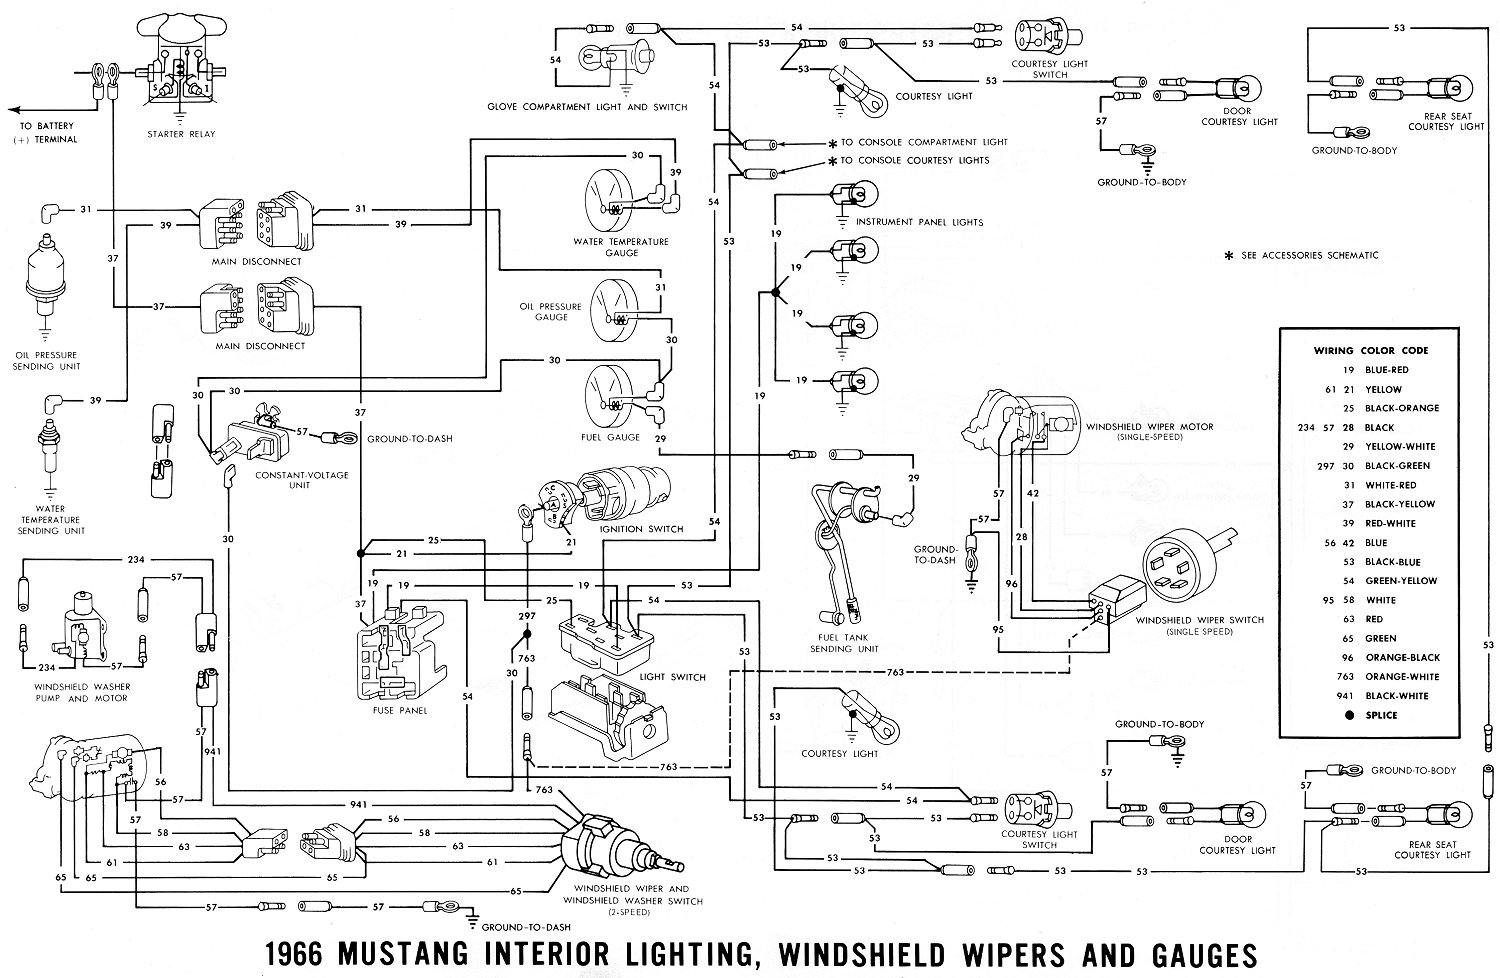 66inter1 1966 mustang wiring diagrams average joe restoration mustang wiring harness diagram at aneh.co